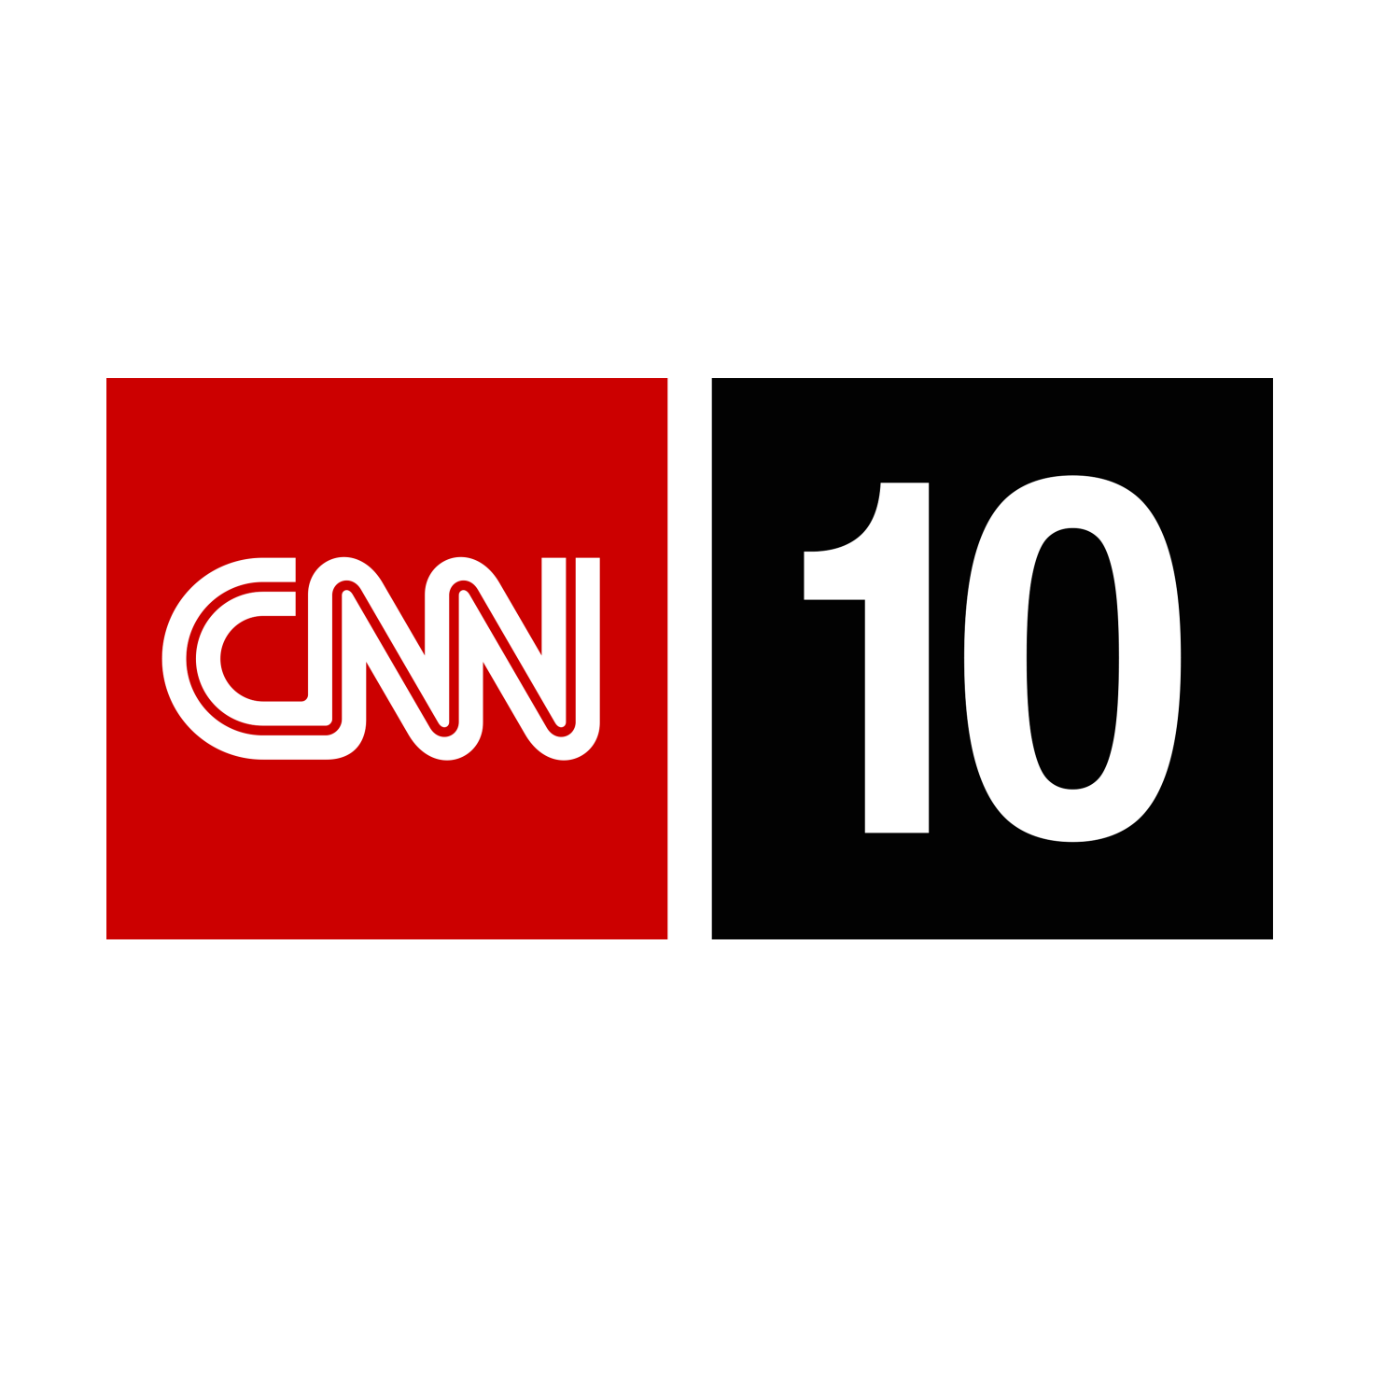 CNN Student News - May 7, 2013